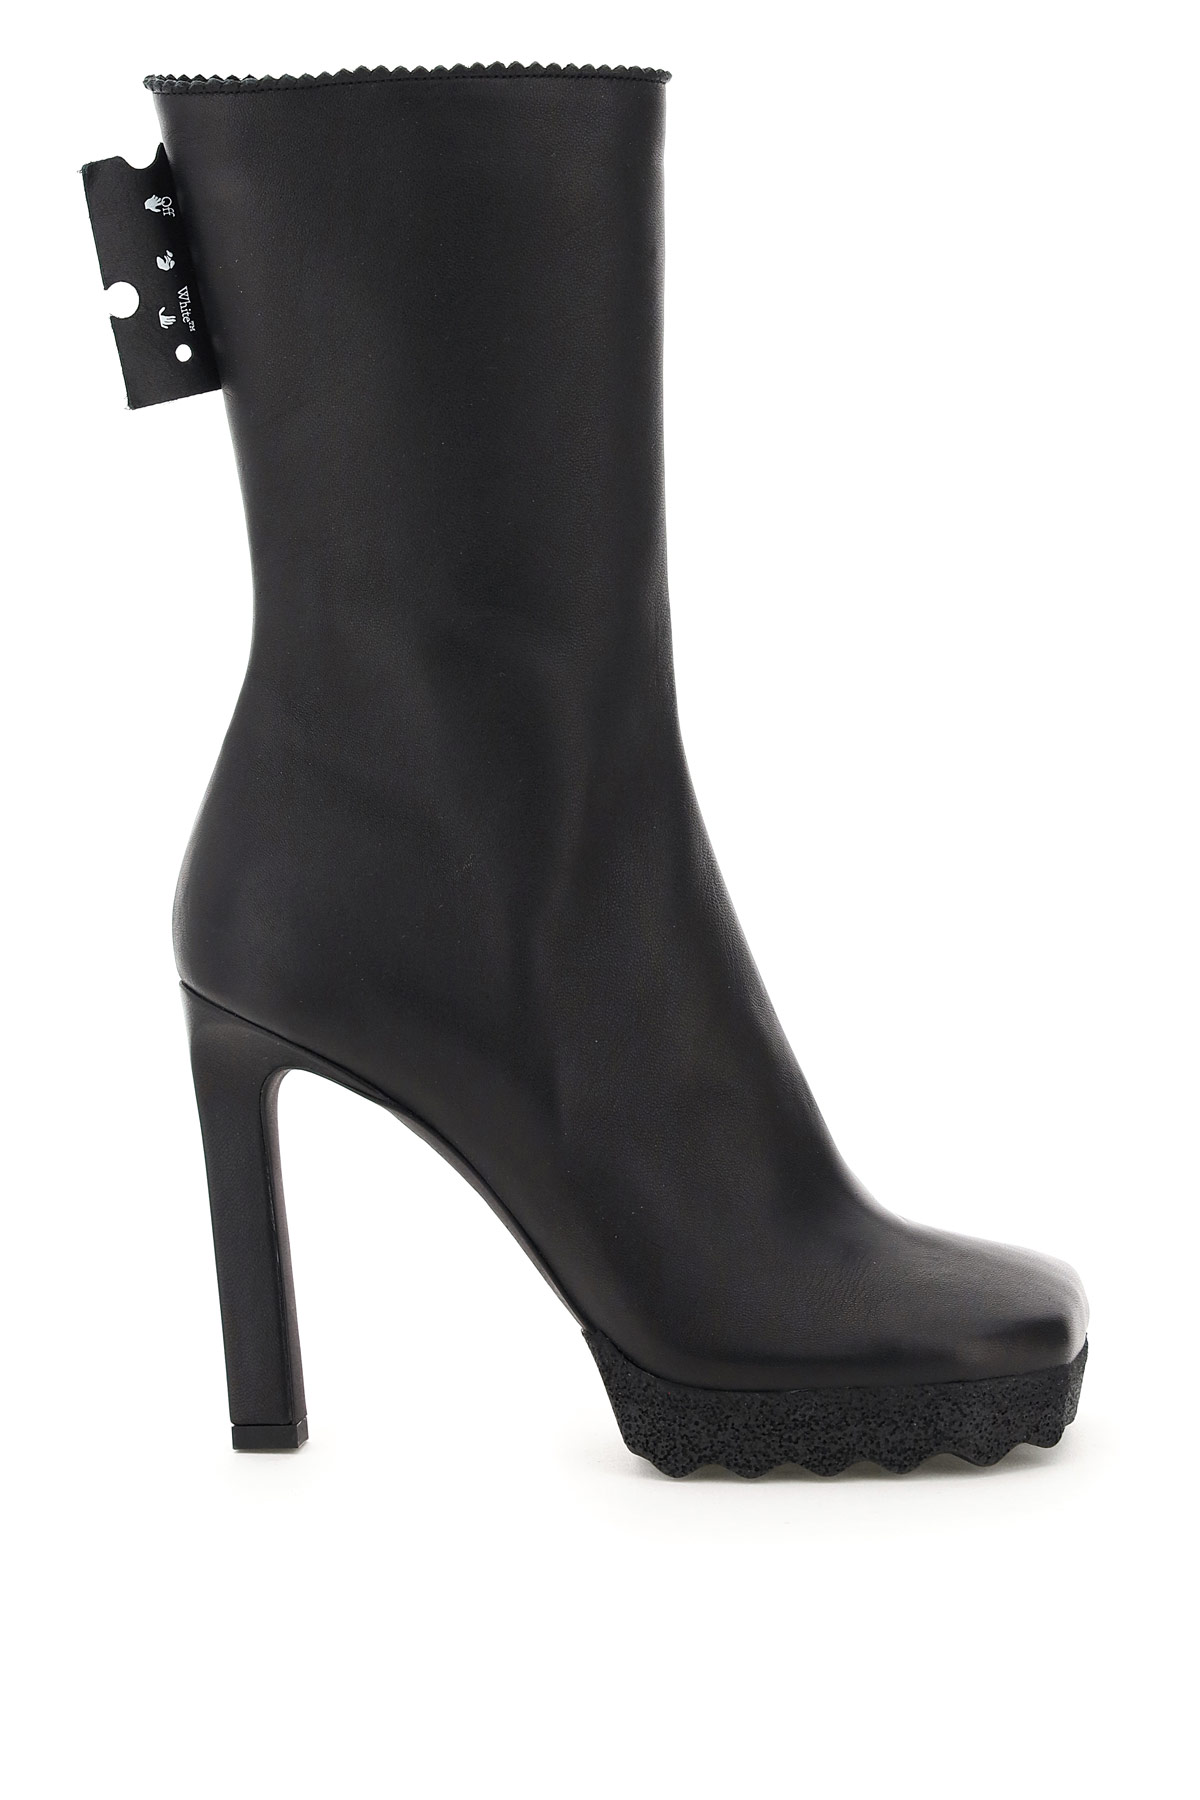 OFF-WHITE NAPPA BOOTS 39 Black Leather